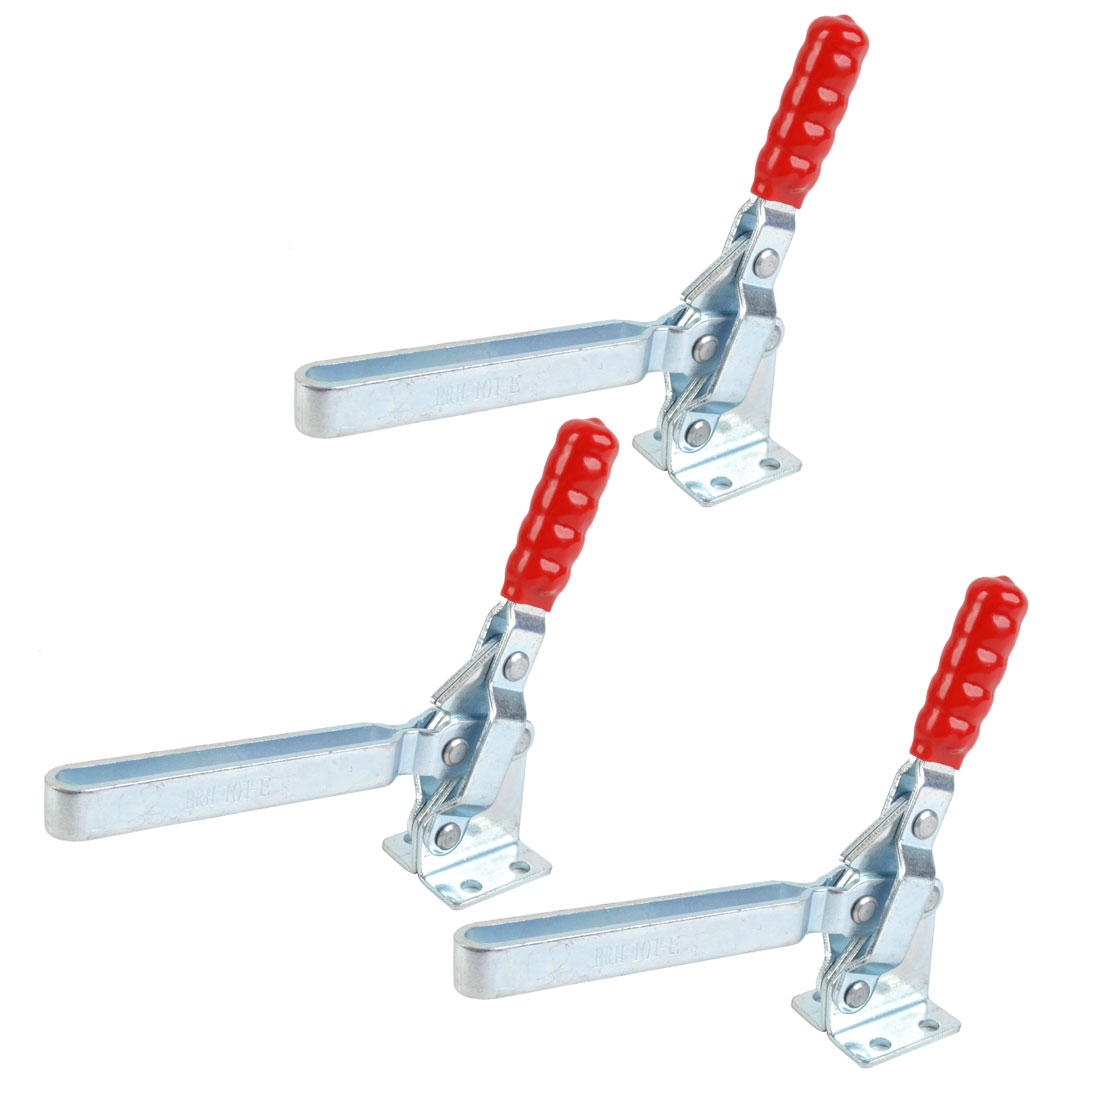 3 Pcs 101-E 180Kg 396 Lbs U Shaped Bar Flange Base Quick Release Holding Red Straight Handle Vertical Toggle Clamp